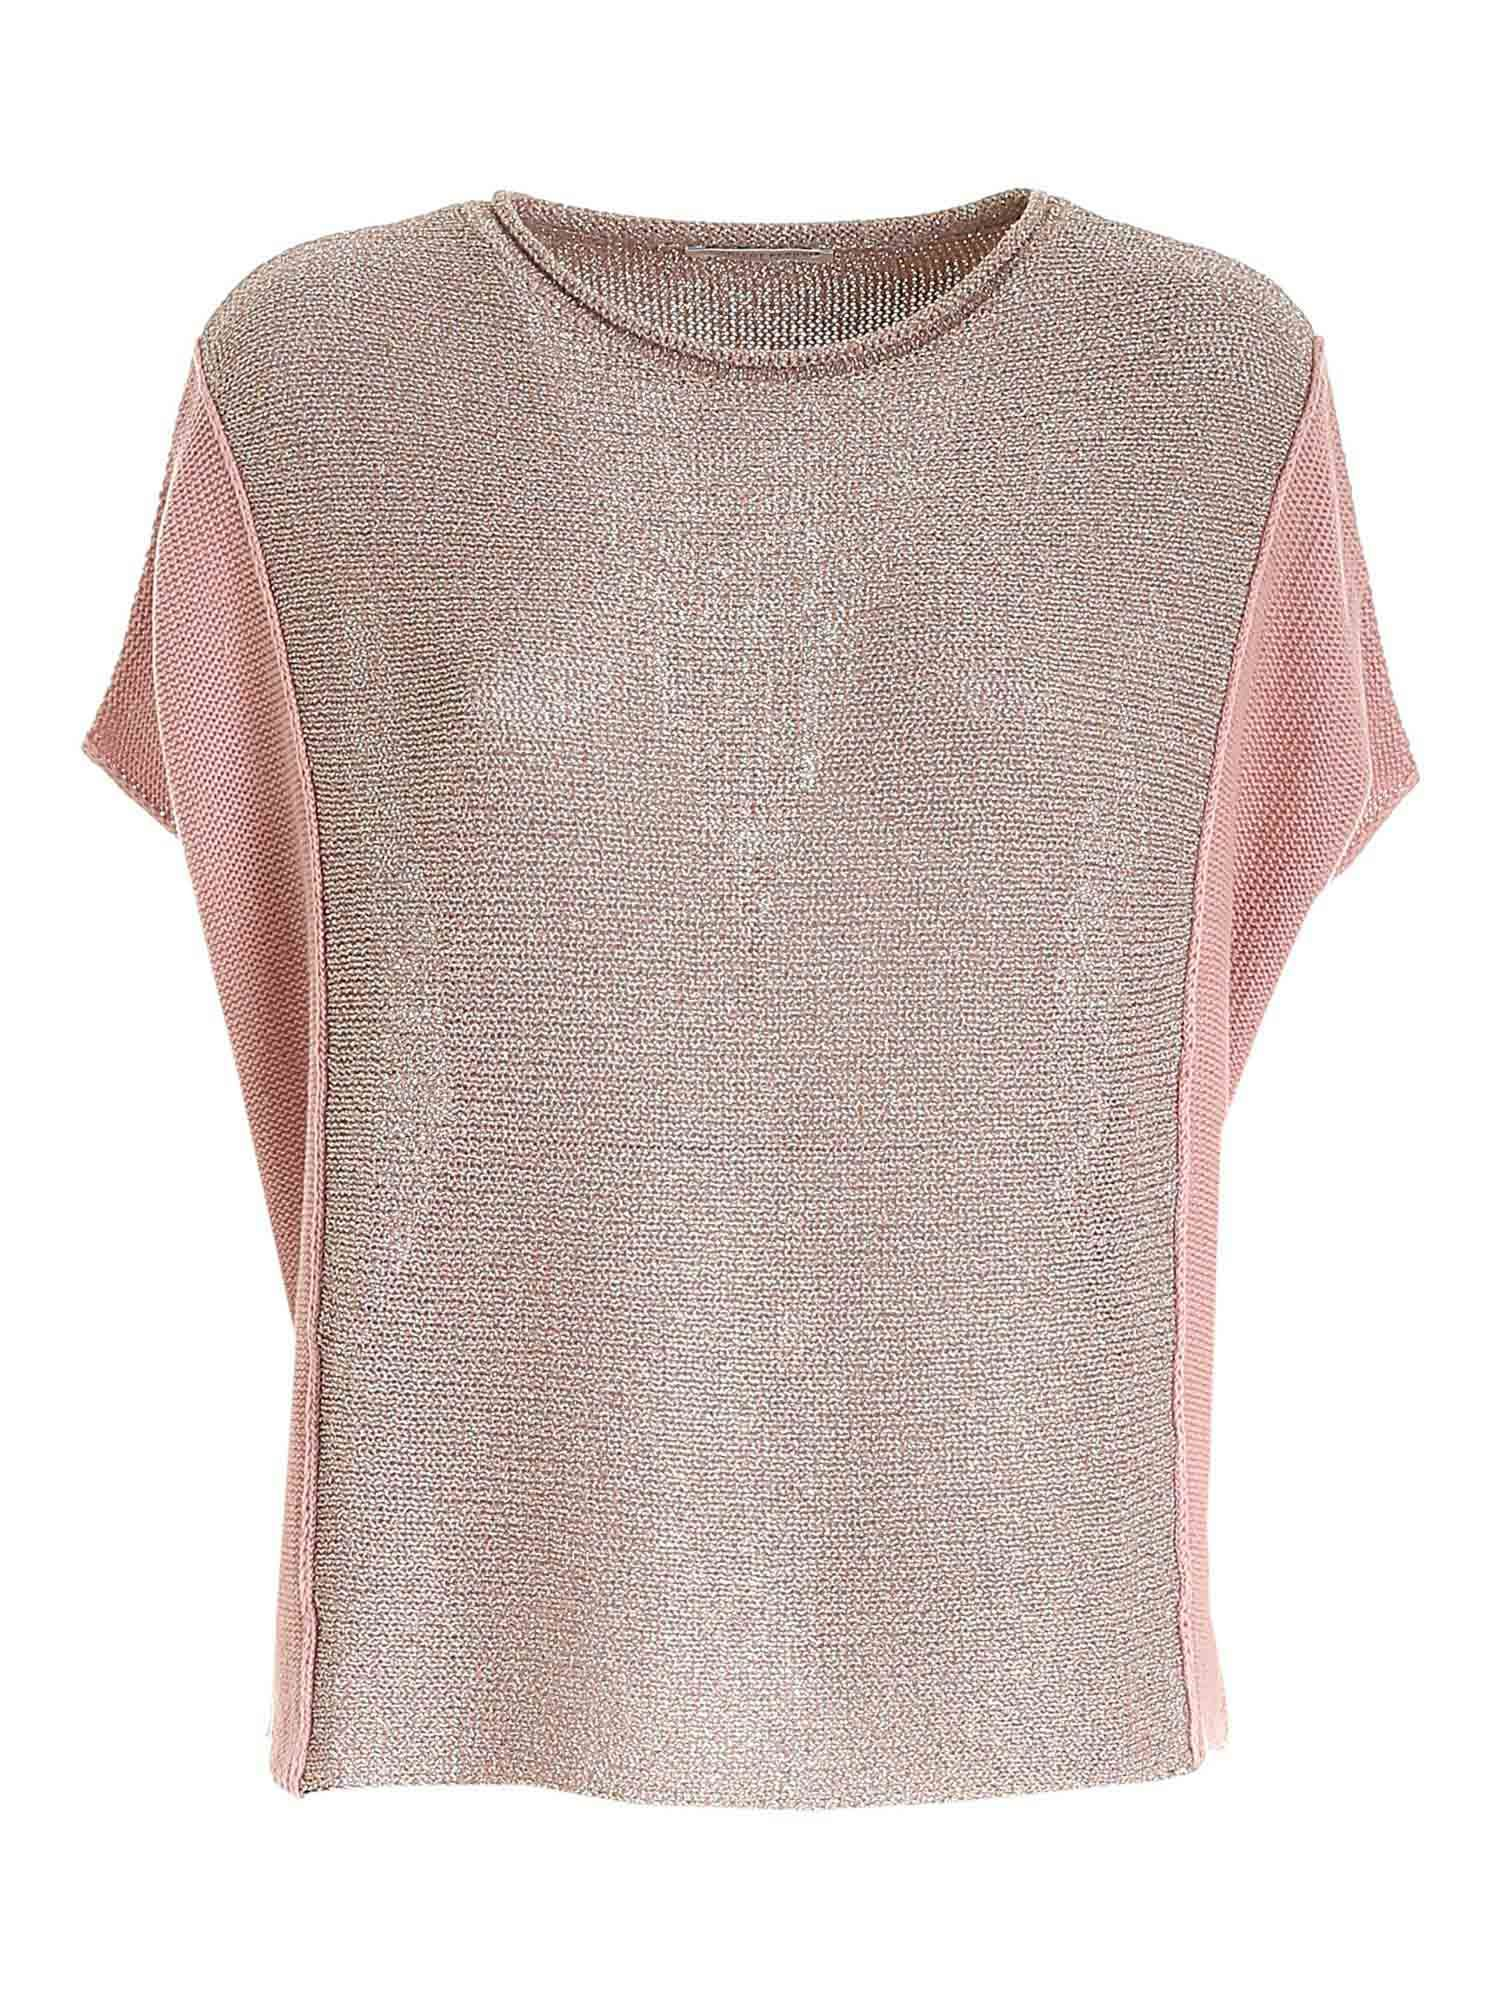 Le Tricot Perugia LAMÉ DETAIL SWEATER IN PINK